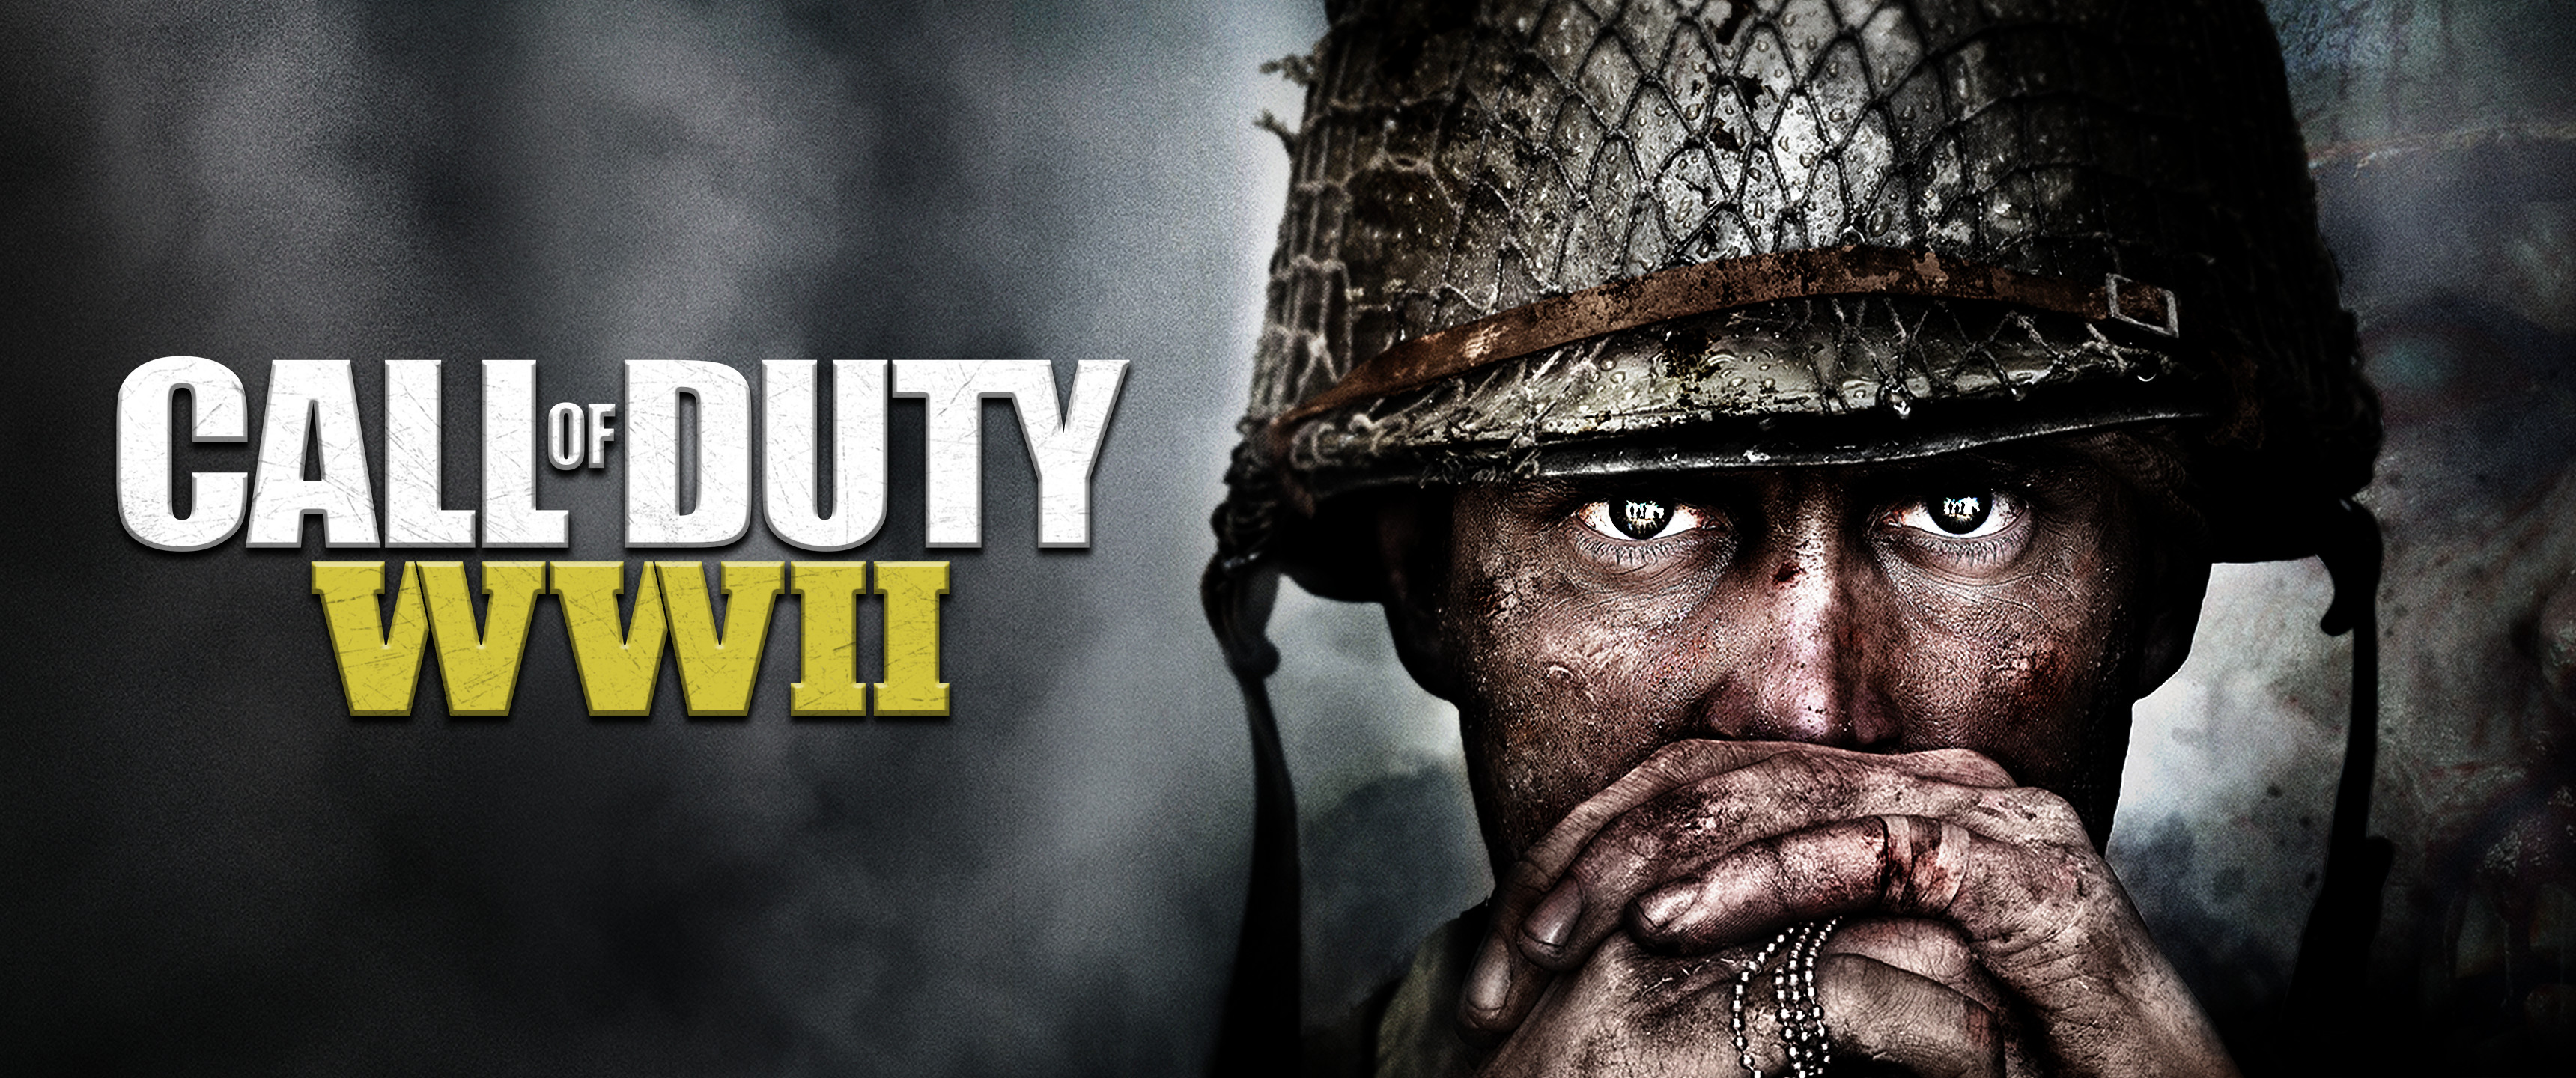 Image21:9 Call Of Duty: WWII Wallpaper …